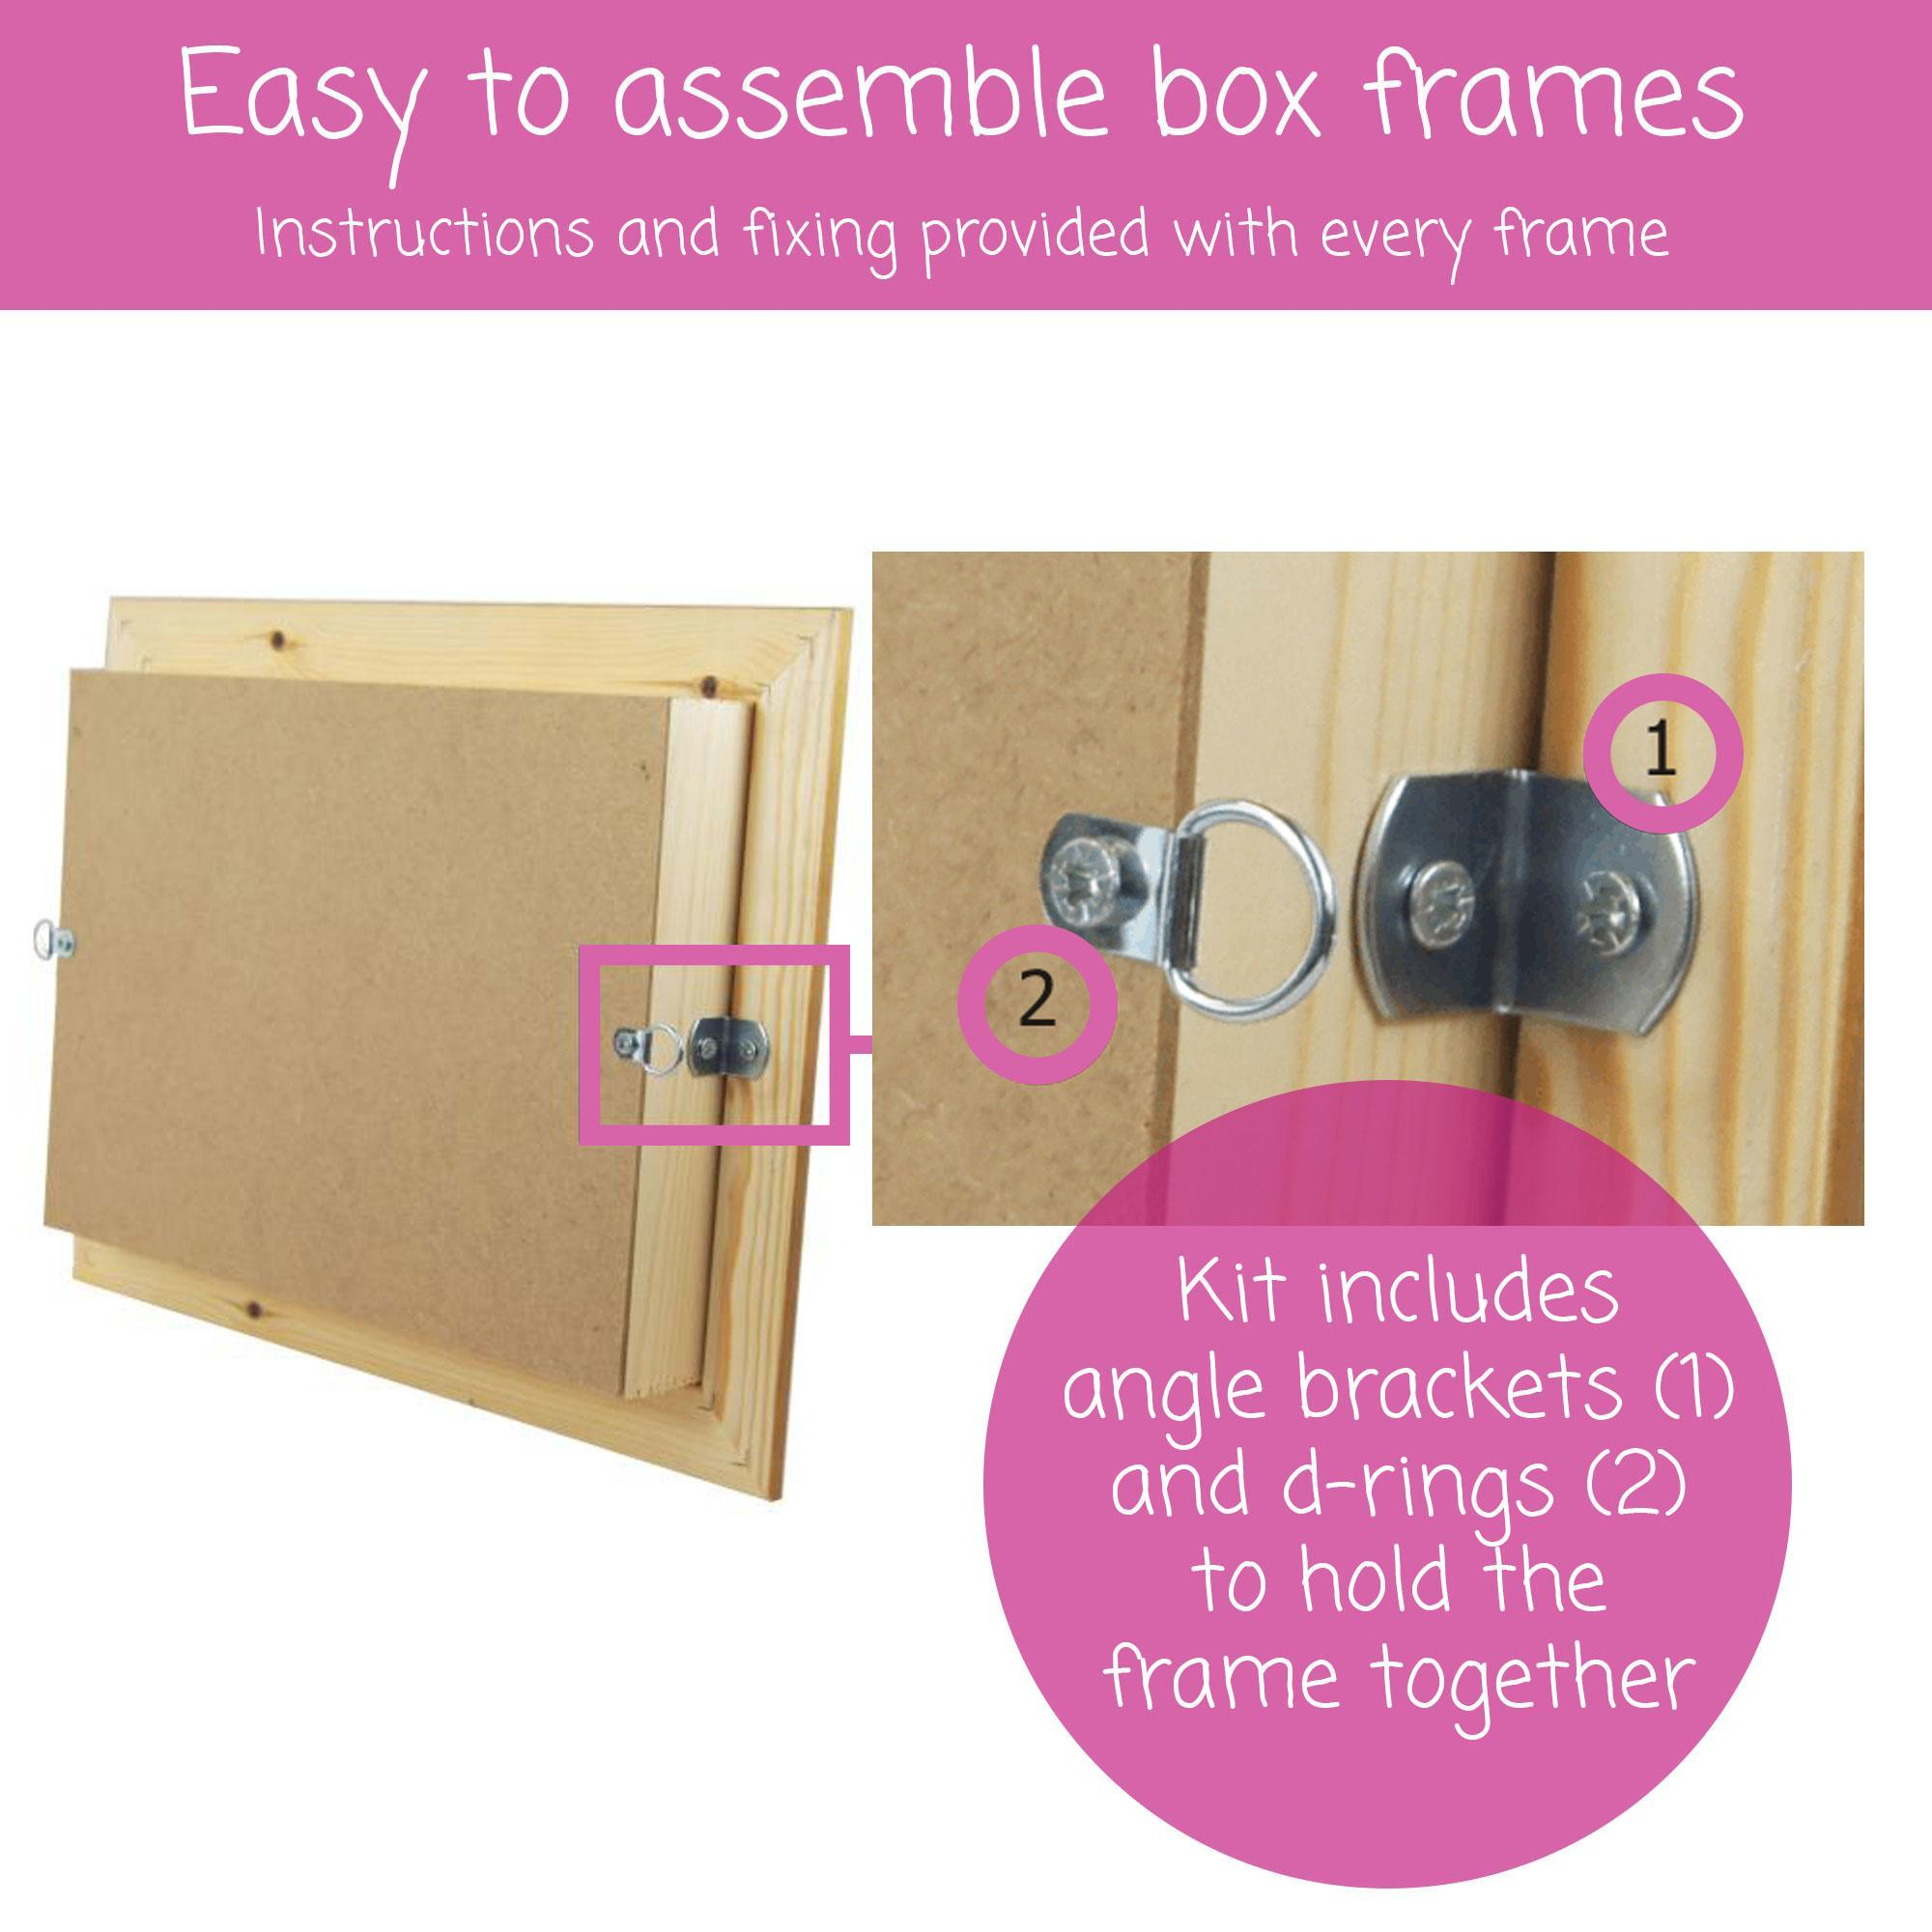 Rear of box making